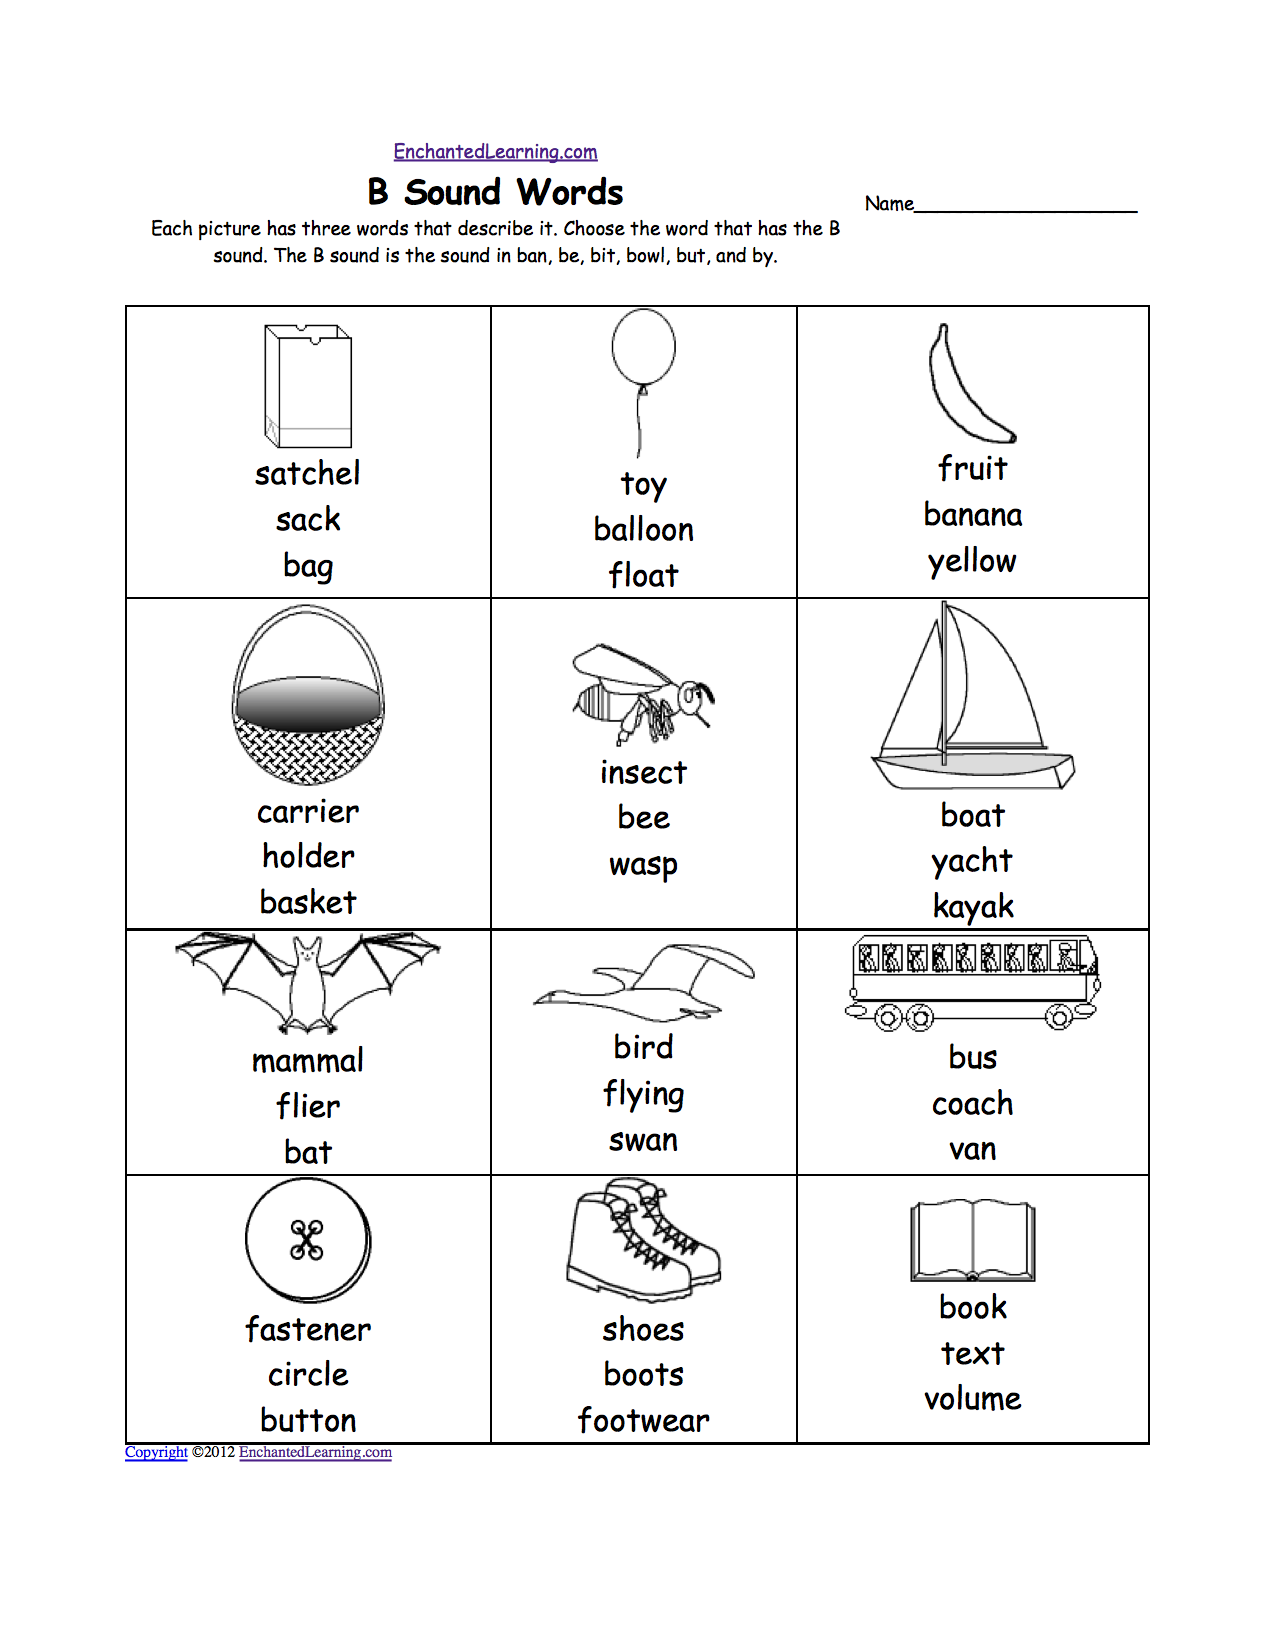 Proatmealus  Scenic Phonics Worksheets Multiple Choice Worksheets To Print  With Entrancing Quotbquot Sound Phonics Worksheet Multiple Choice Each Picture Has Three Words That Describe It Choose The Word That Has A Quotbquot Sound The Quotbquot Sound Is The Sound  With Comely Fall Worksheet Also Context Clues Worksheet Rd Grade In Addition Zoology Worksheets And Adding Fractions Worksheets Pdf As Well As Linear Functions Worksheets Additionally Following Directions Worksheets For Middle School From Enchantedlearningcom With Proatmealus  Entrancing Phonics Worksheets Multiple Choice Worksheets To Print  With Comely Quotbquot Sound Phonics Worksheet Multiple Choice Each Picture Has Three Words That Describe It Choose The Word That Has A Quotbquot Sound The Quotbquot Sound Is The Sound  And Scenic Fall Worksheet Also Context Clues Worksheet Rd Grade In Addition Zoology Worksheets From Enchantedlearningcom